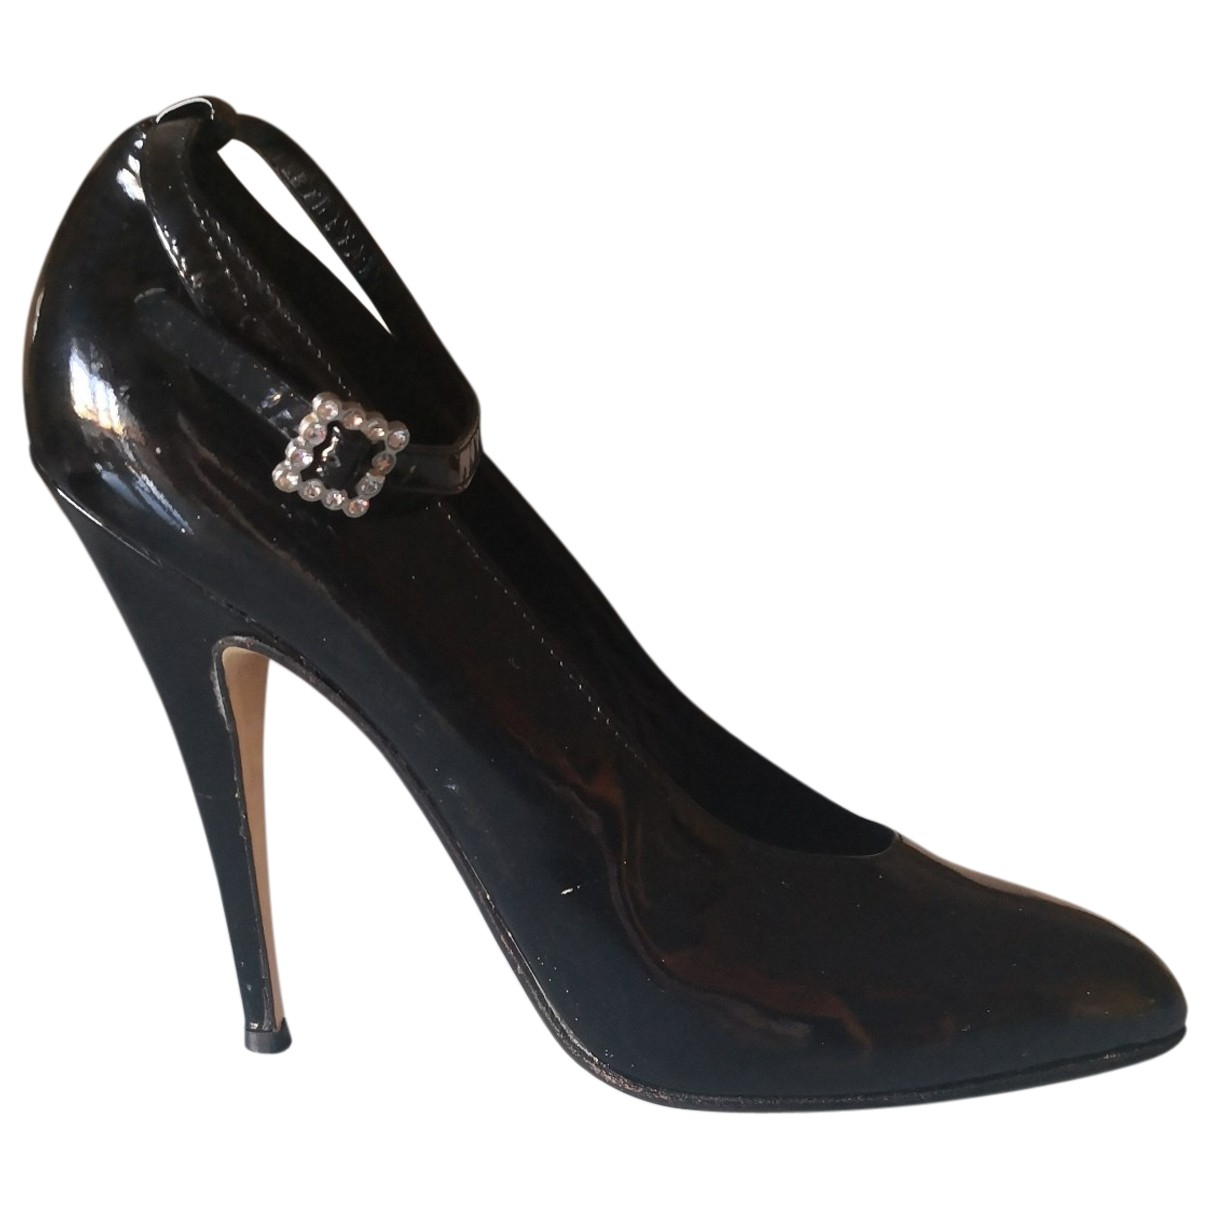 Blumarine \N Black Patent leather Heels for Women 40 EU